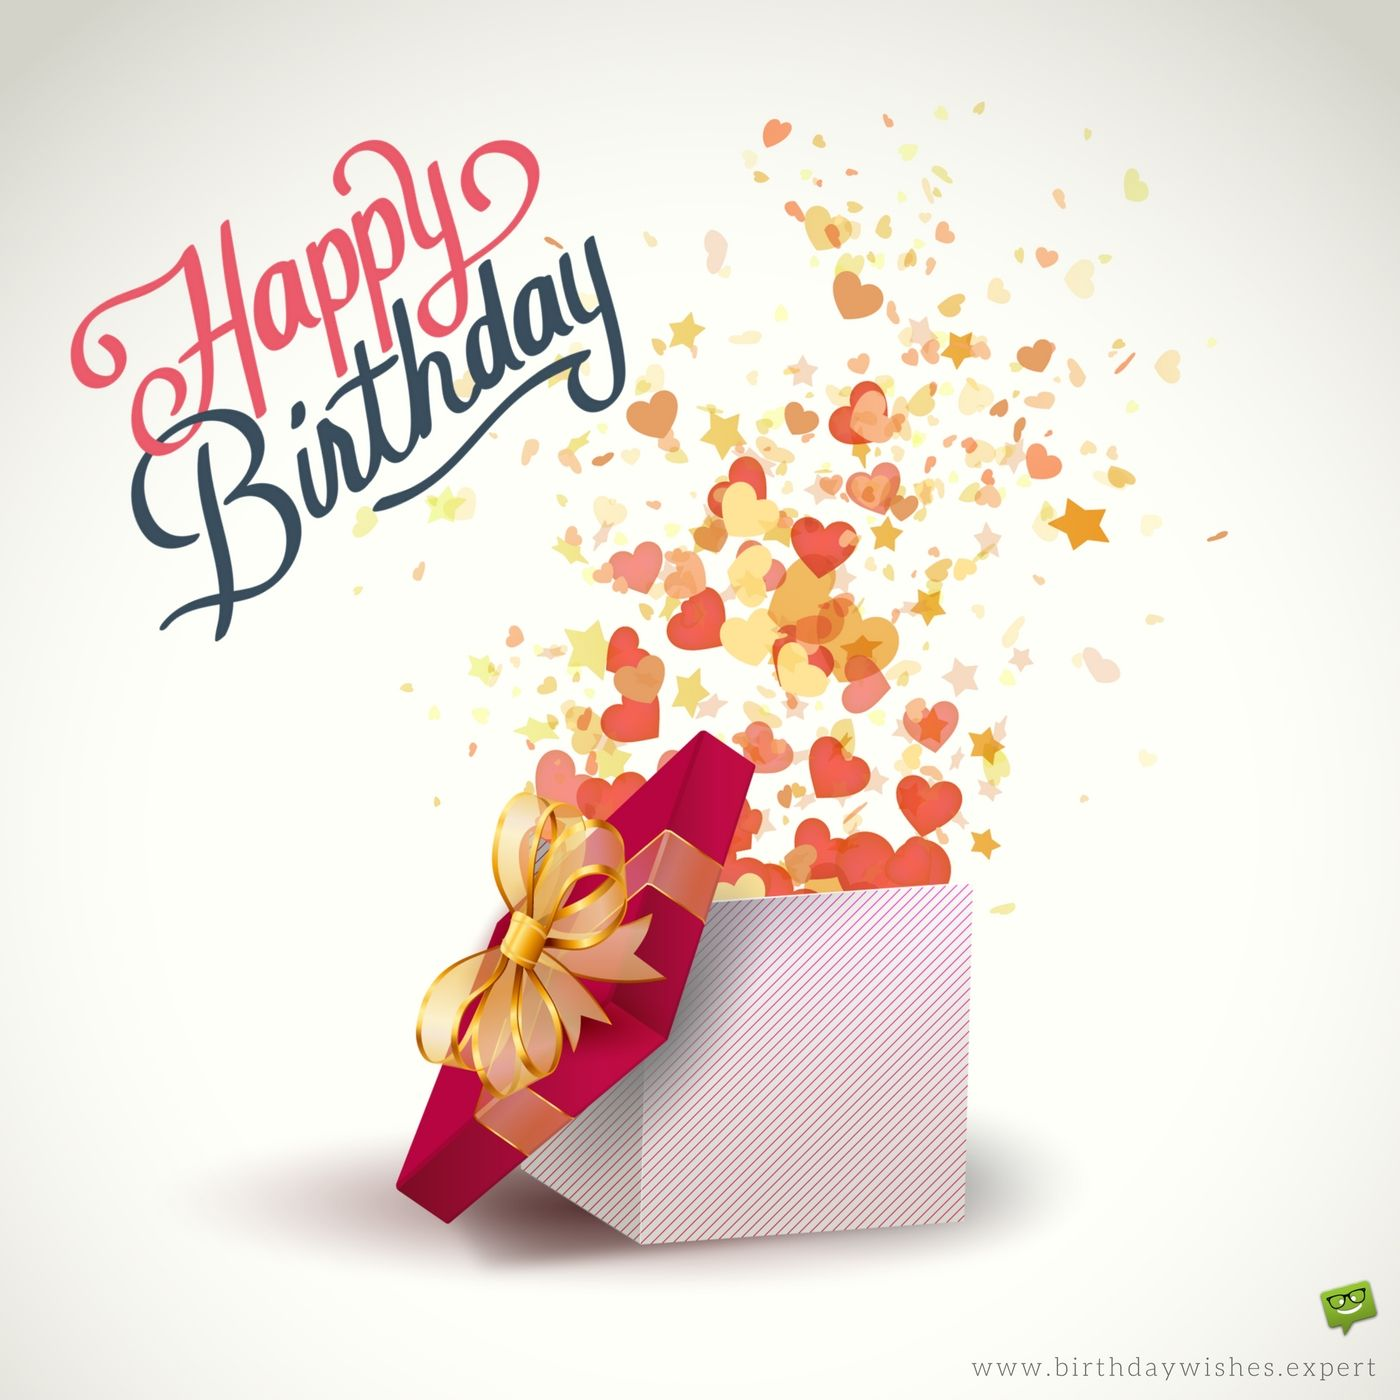 200 happy birthday wishes to help you find the right words happy 200 happy birthday wishes to help you find the right words m4hsunfo